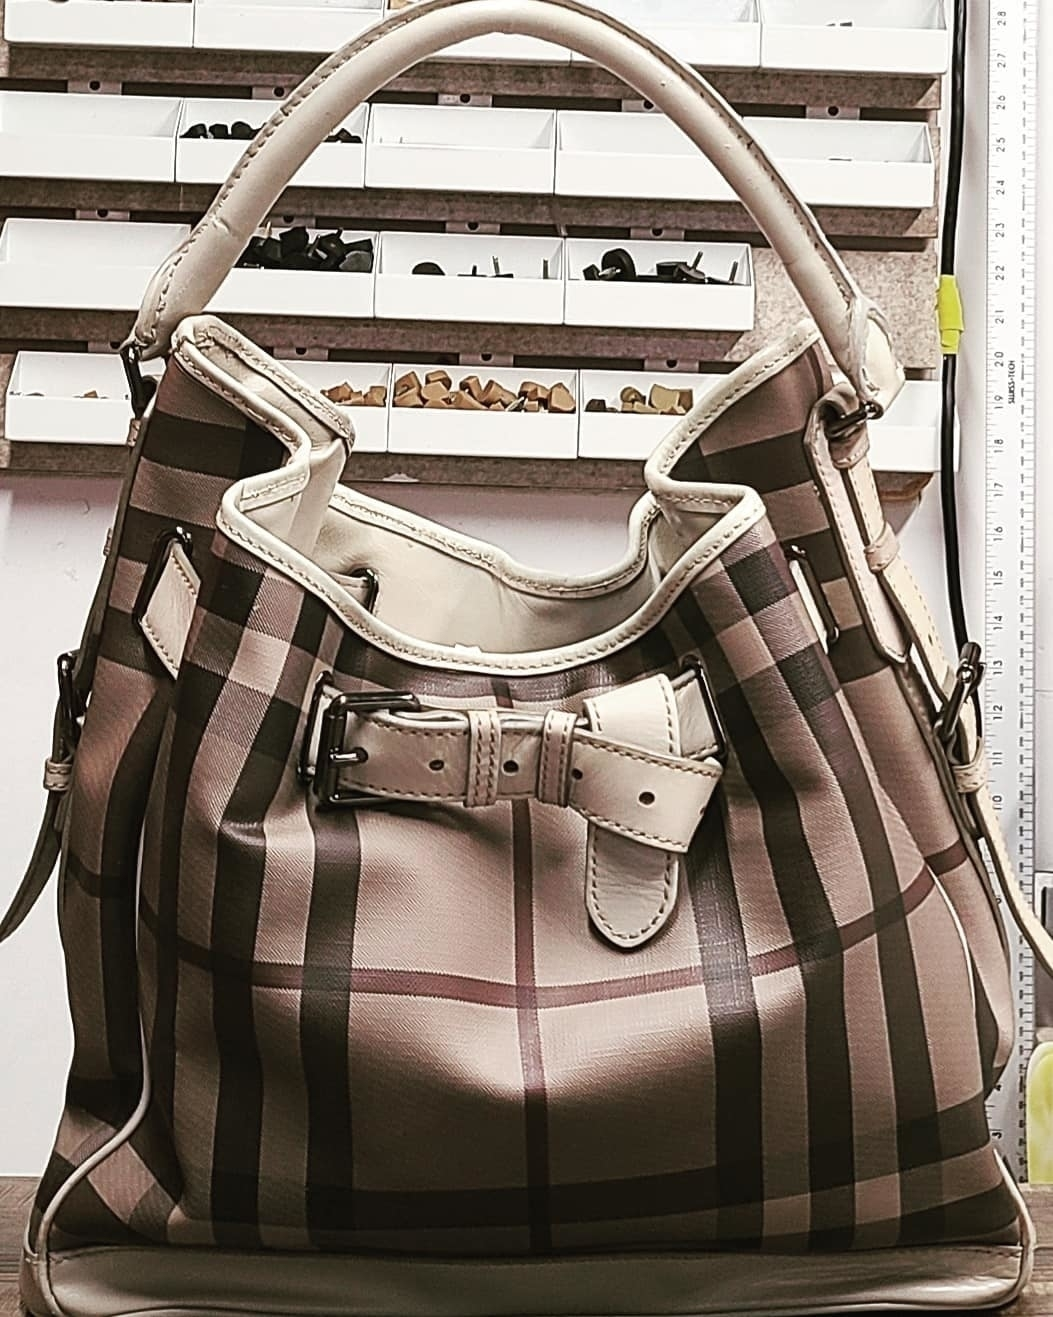 KW Shoe Repair & Sneaker Cleaning Service in Kitchener: We were able restore  this beautiful BURBERRY luxury handbag. This iconic handbag was professionally cleaned inside& outside.